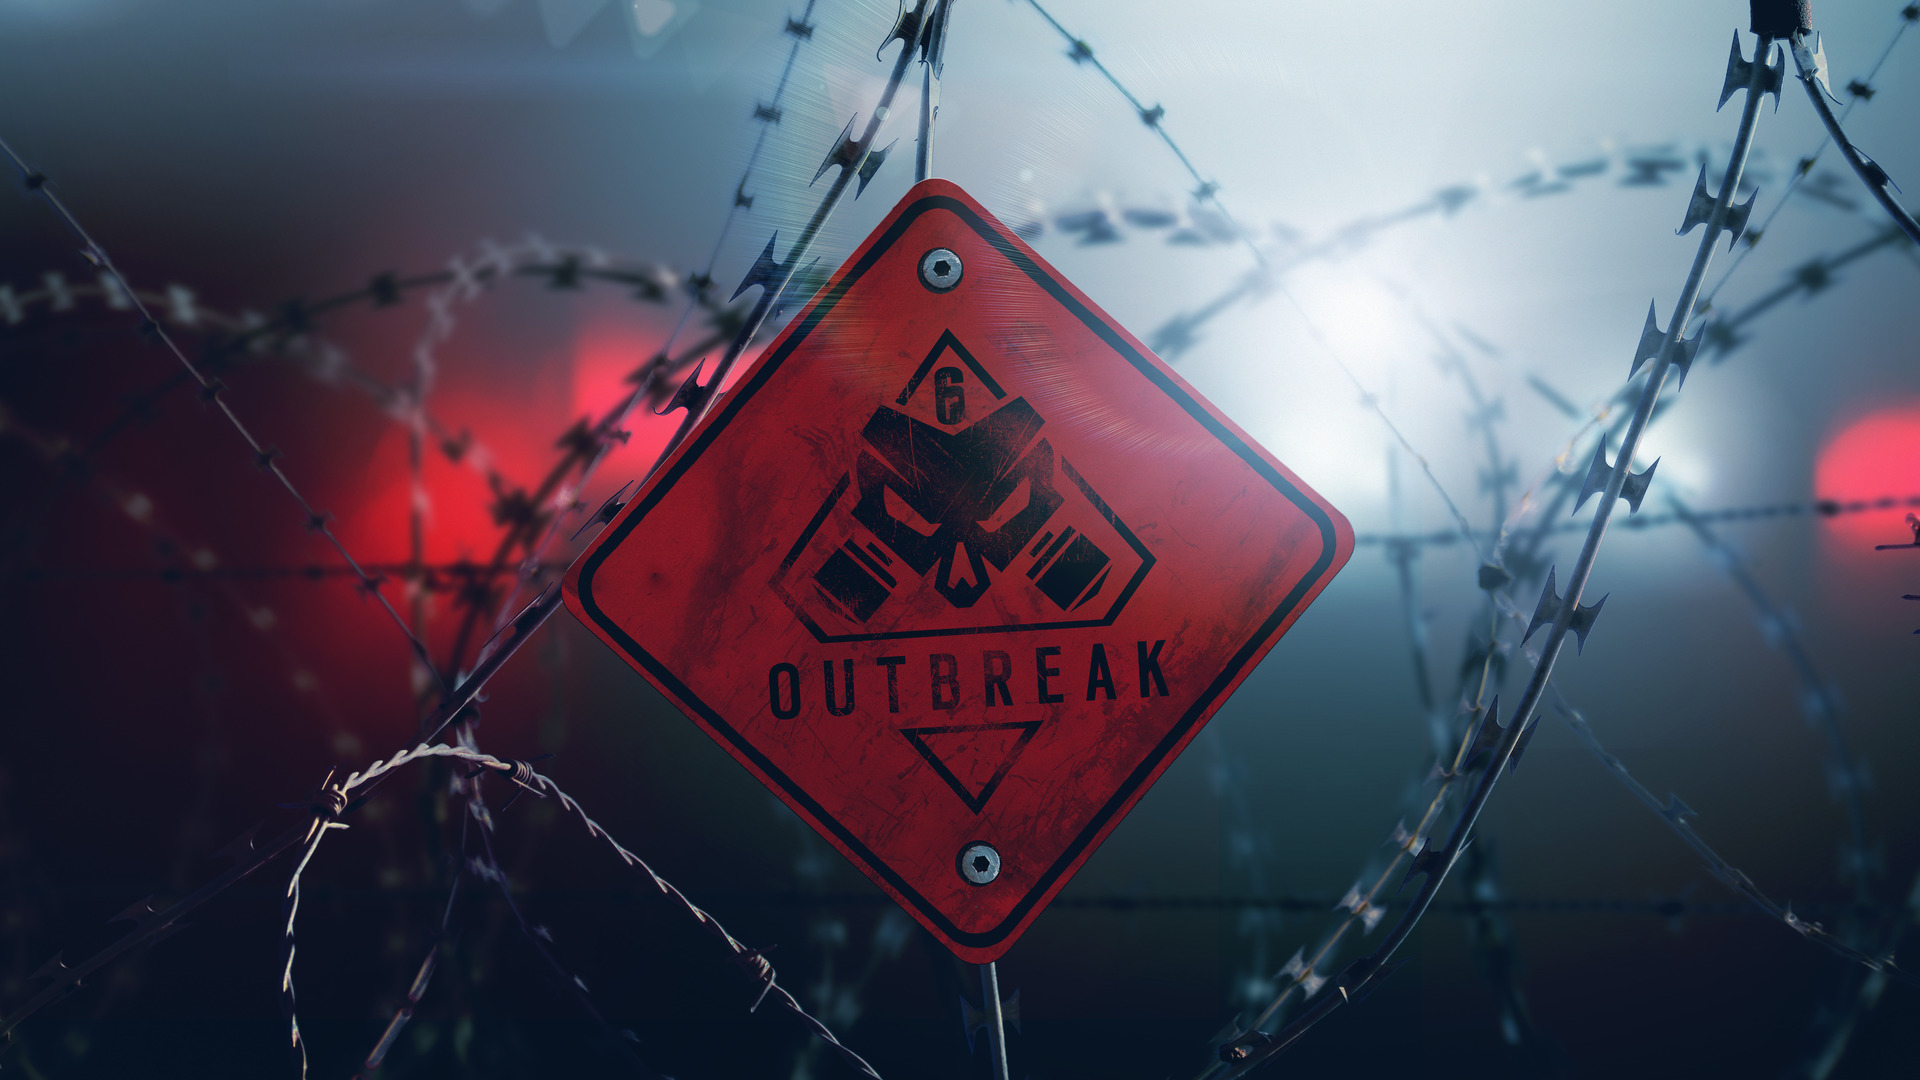 Rainbow Six Siege: Outbreak guide - Tips, tricks and